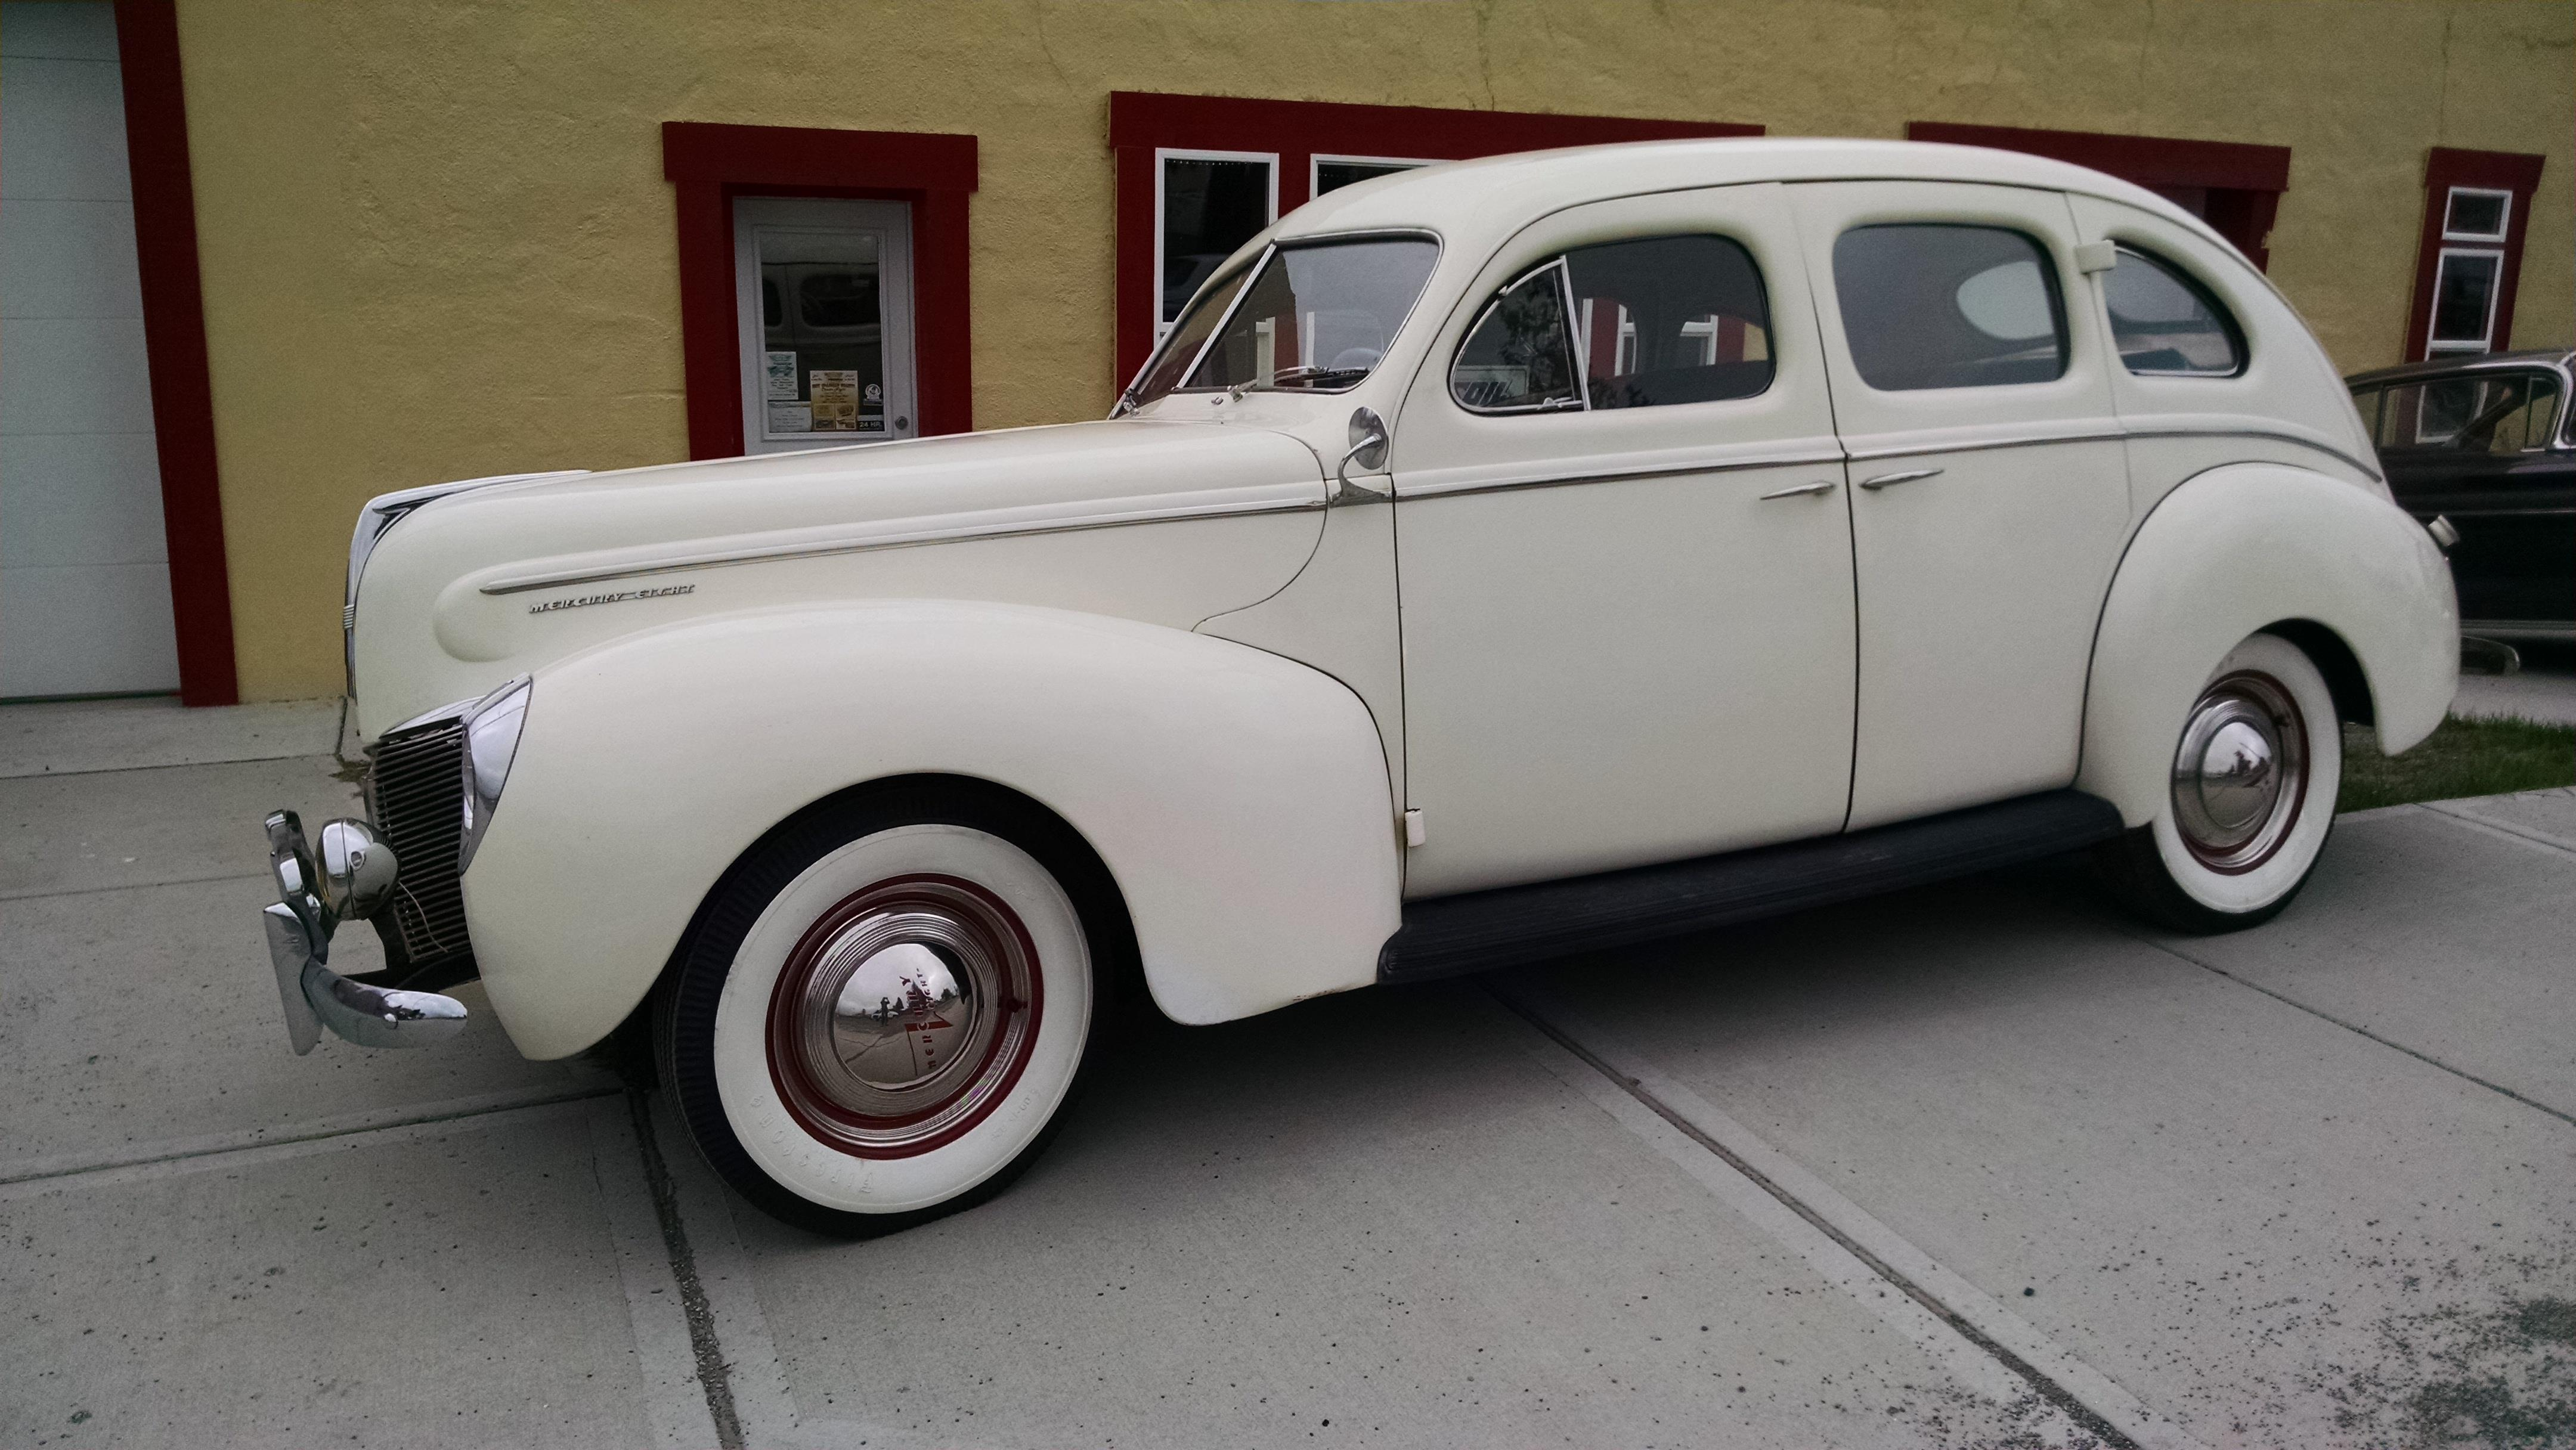 1940 Mercury Sedan 69730 Miles Cream 239 V8 Manual 1941 4 Door Prevnext